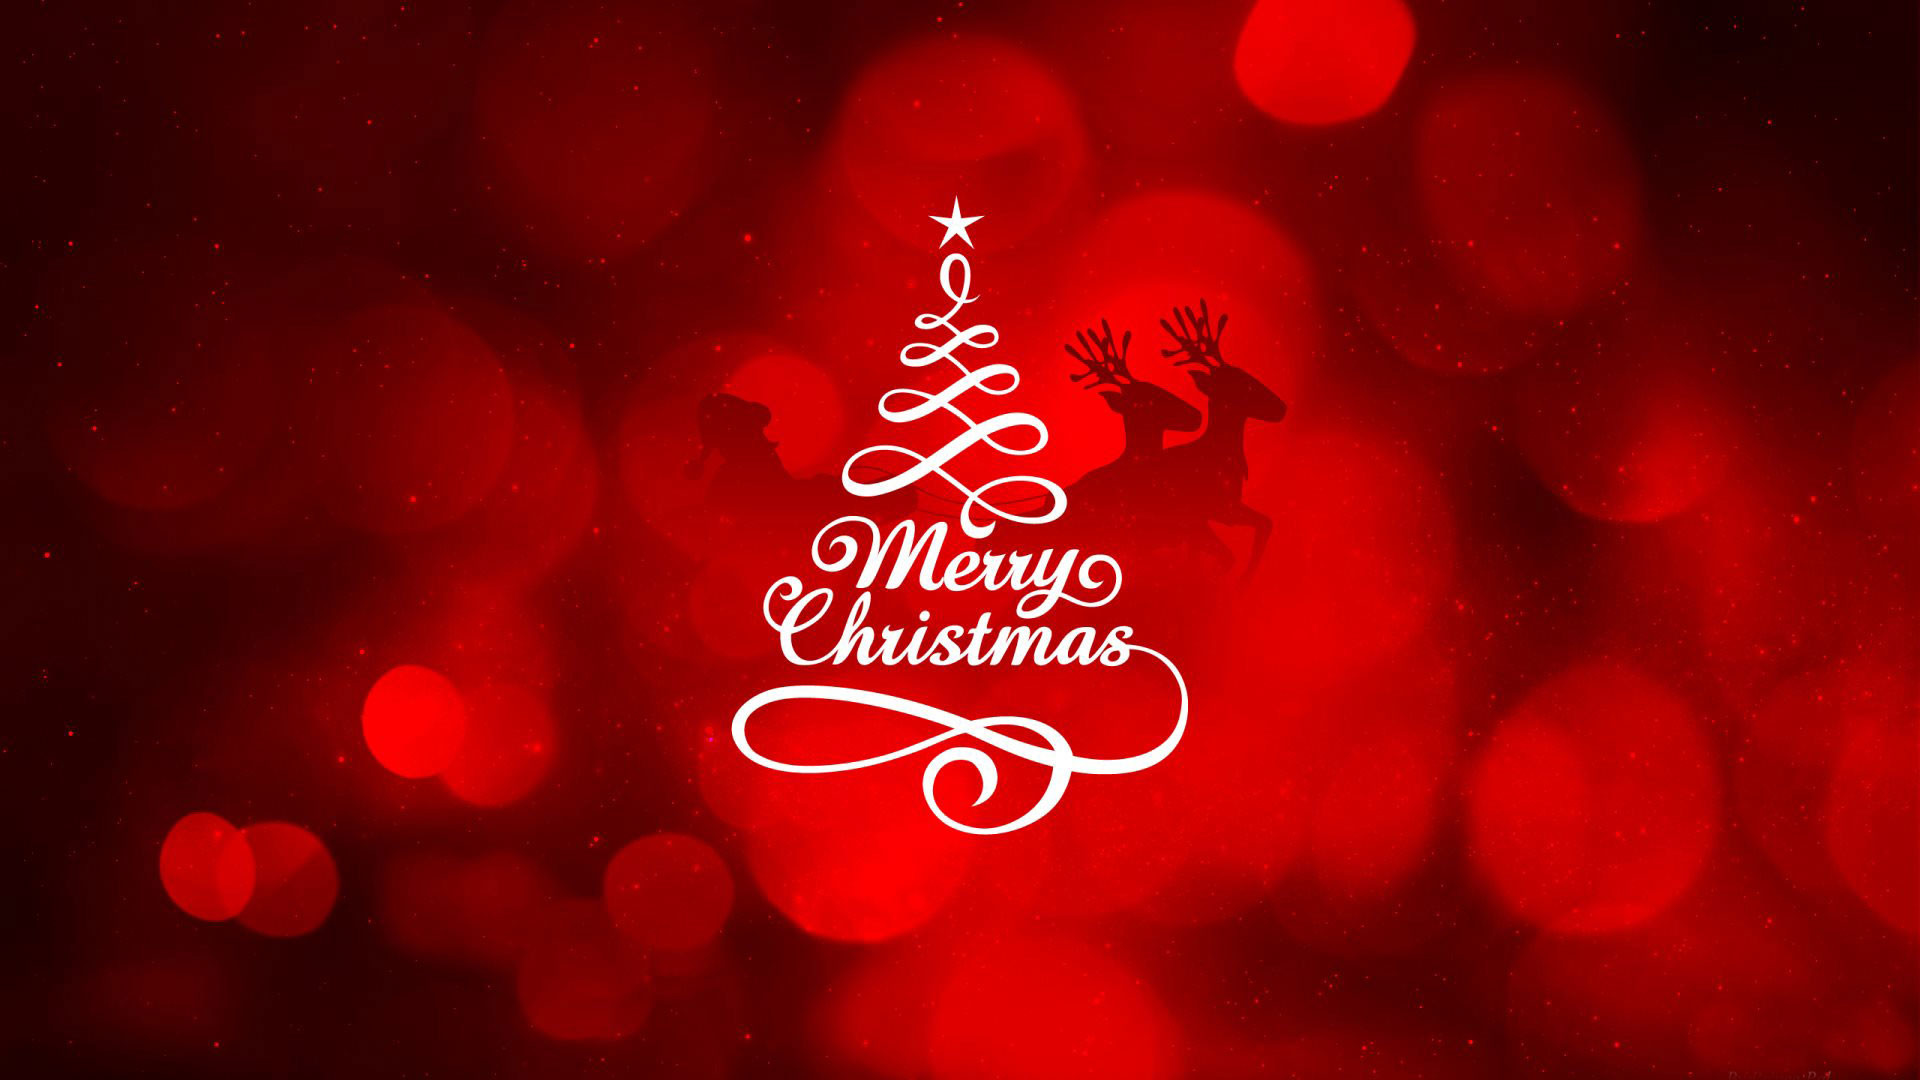 1920x1200 3D Christmas Wallpapers